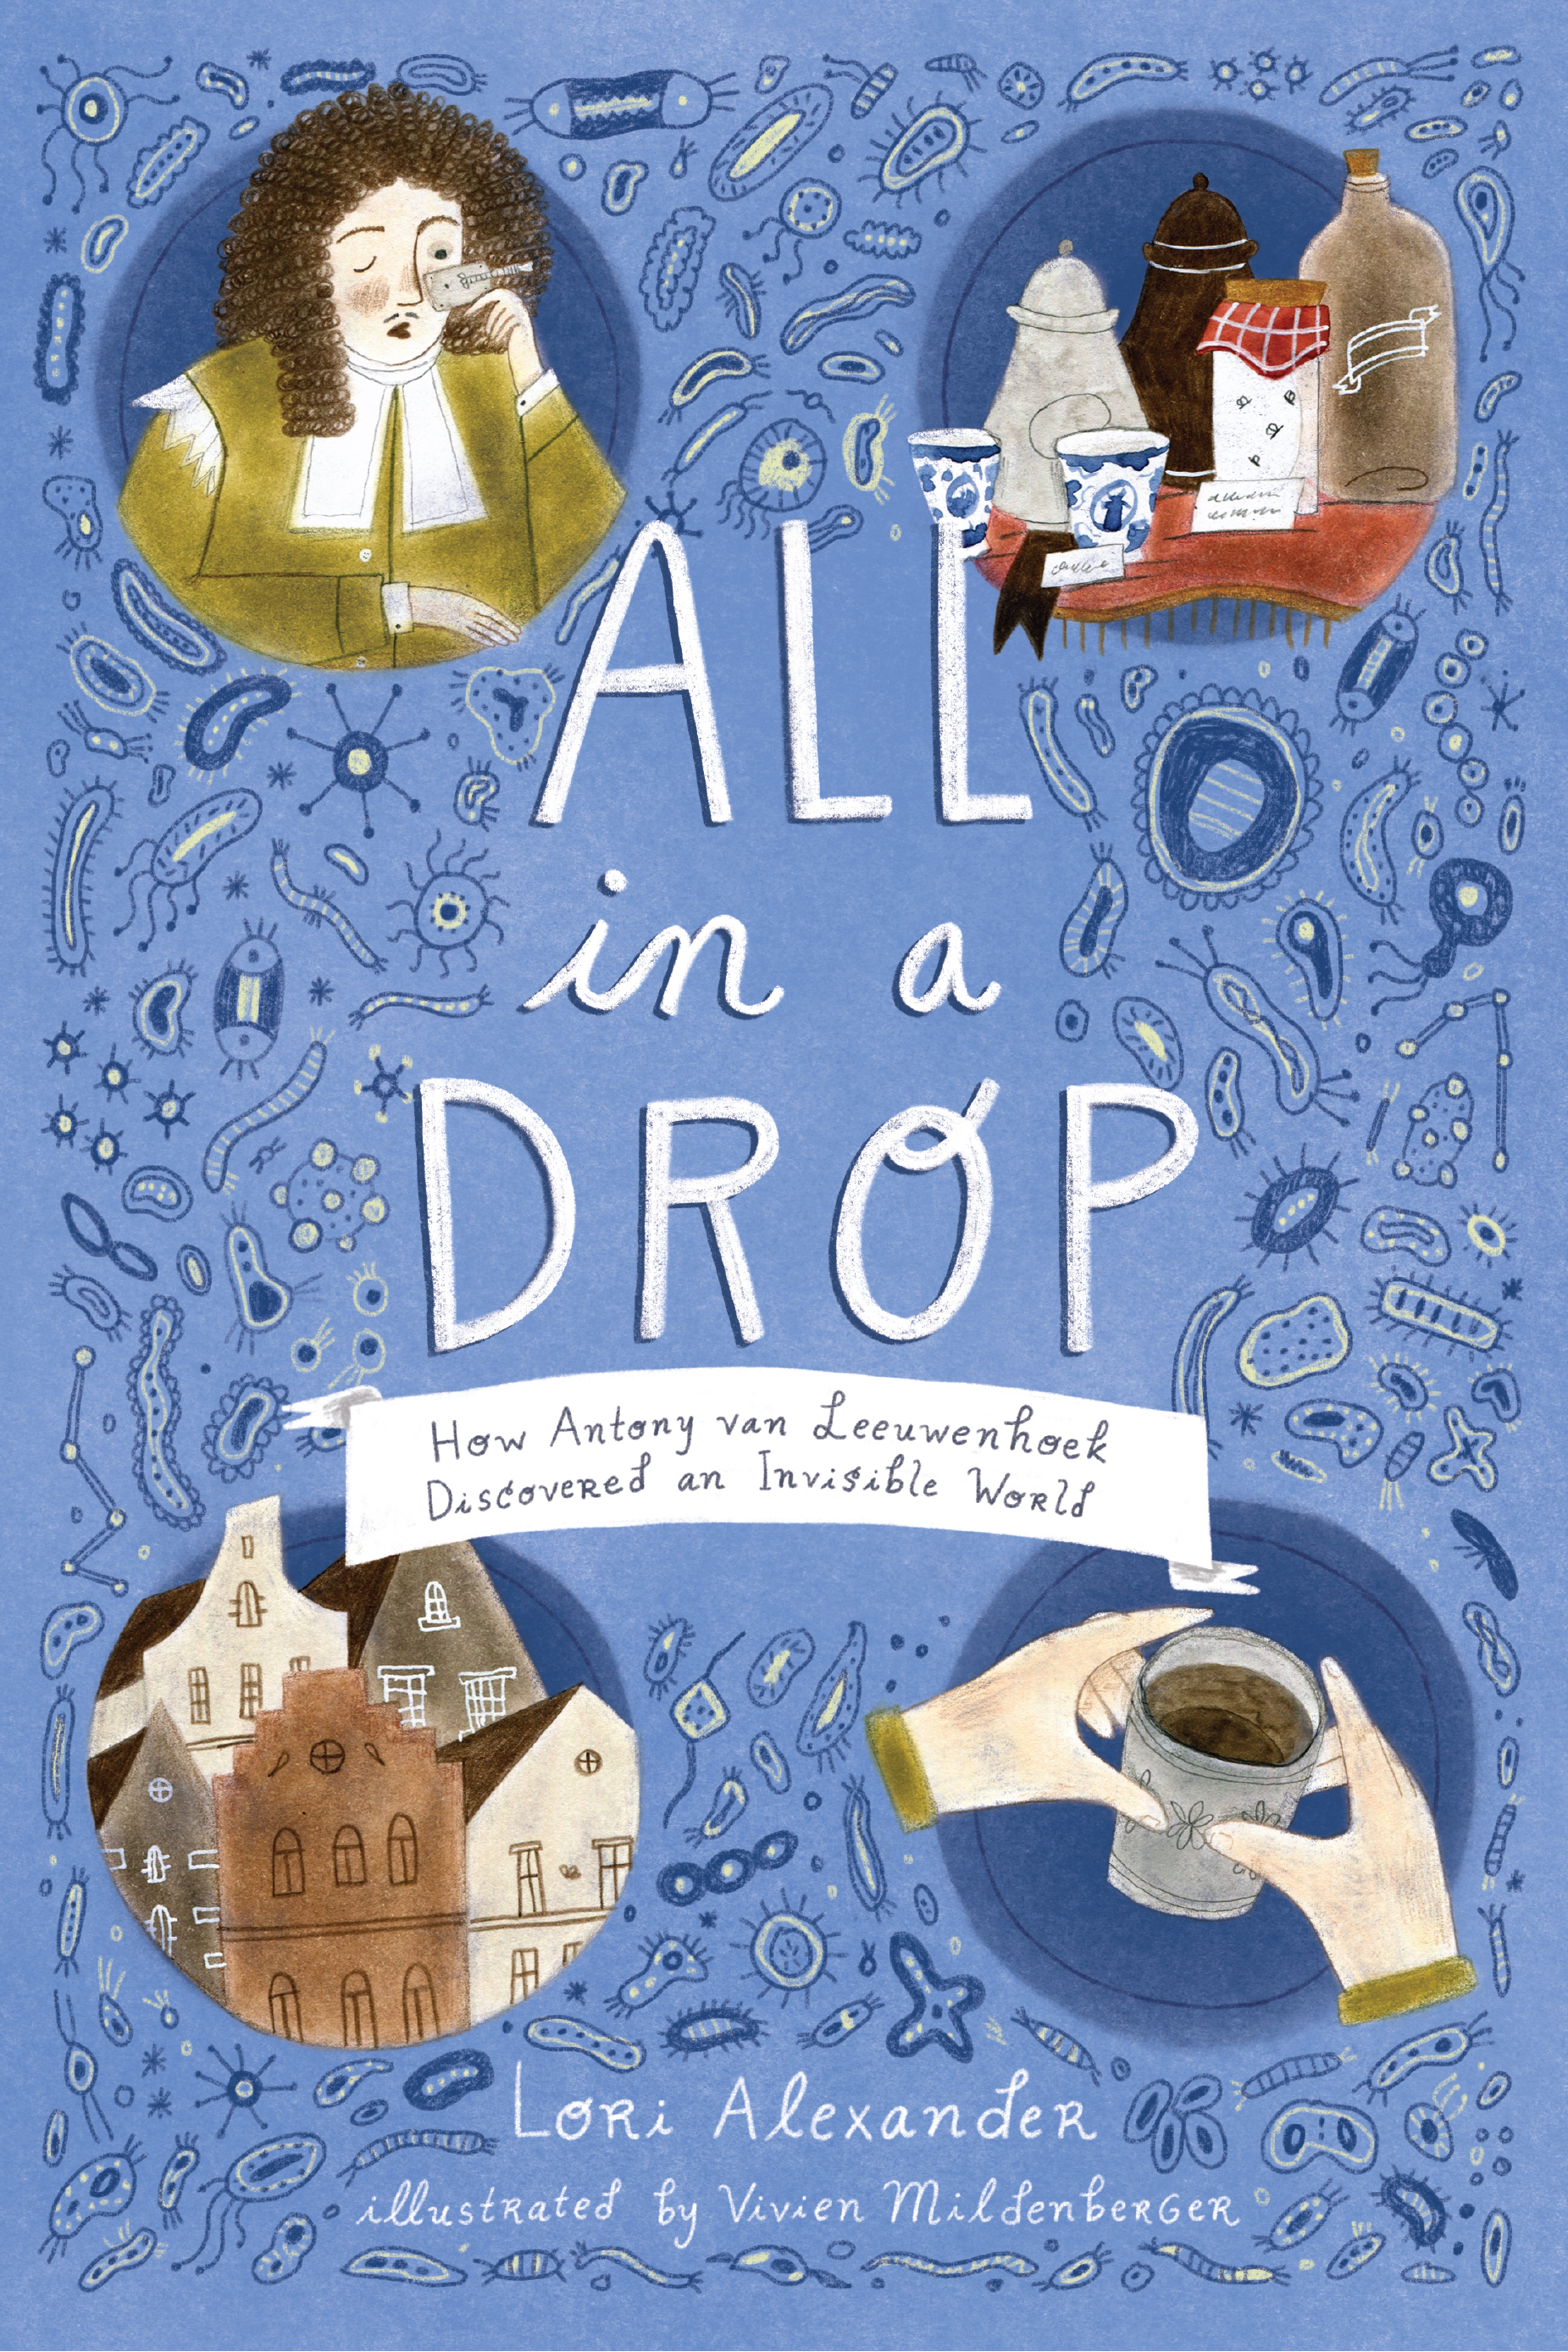 All in a Drop: How Antony van Leeuwenhoek Discovered an Invisible World Author:Lori Alexander Publisher Name: Houghton Mifflin Harcourt Date of Publication: August 6, 2019